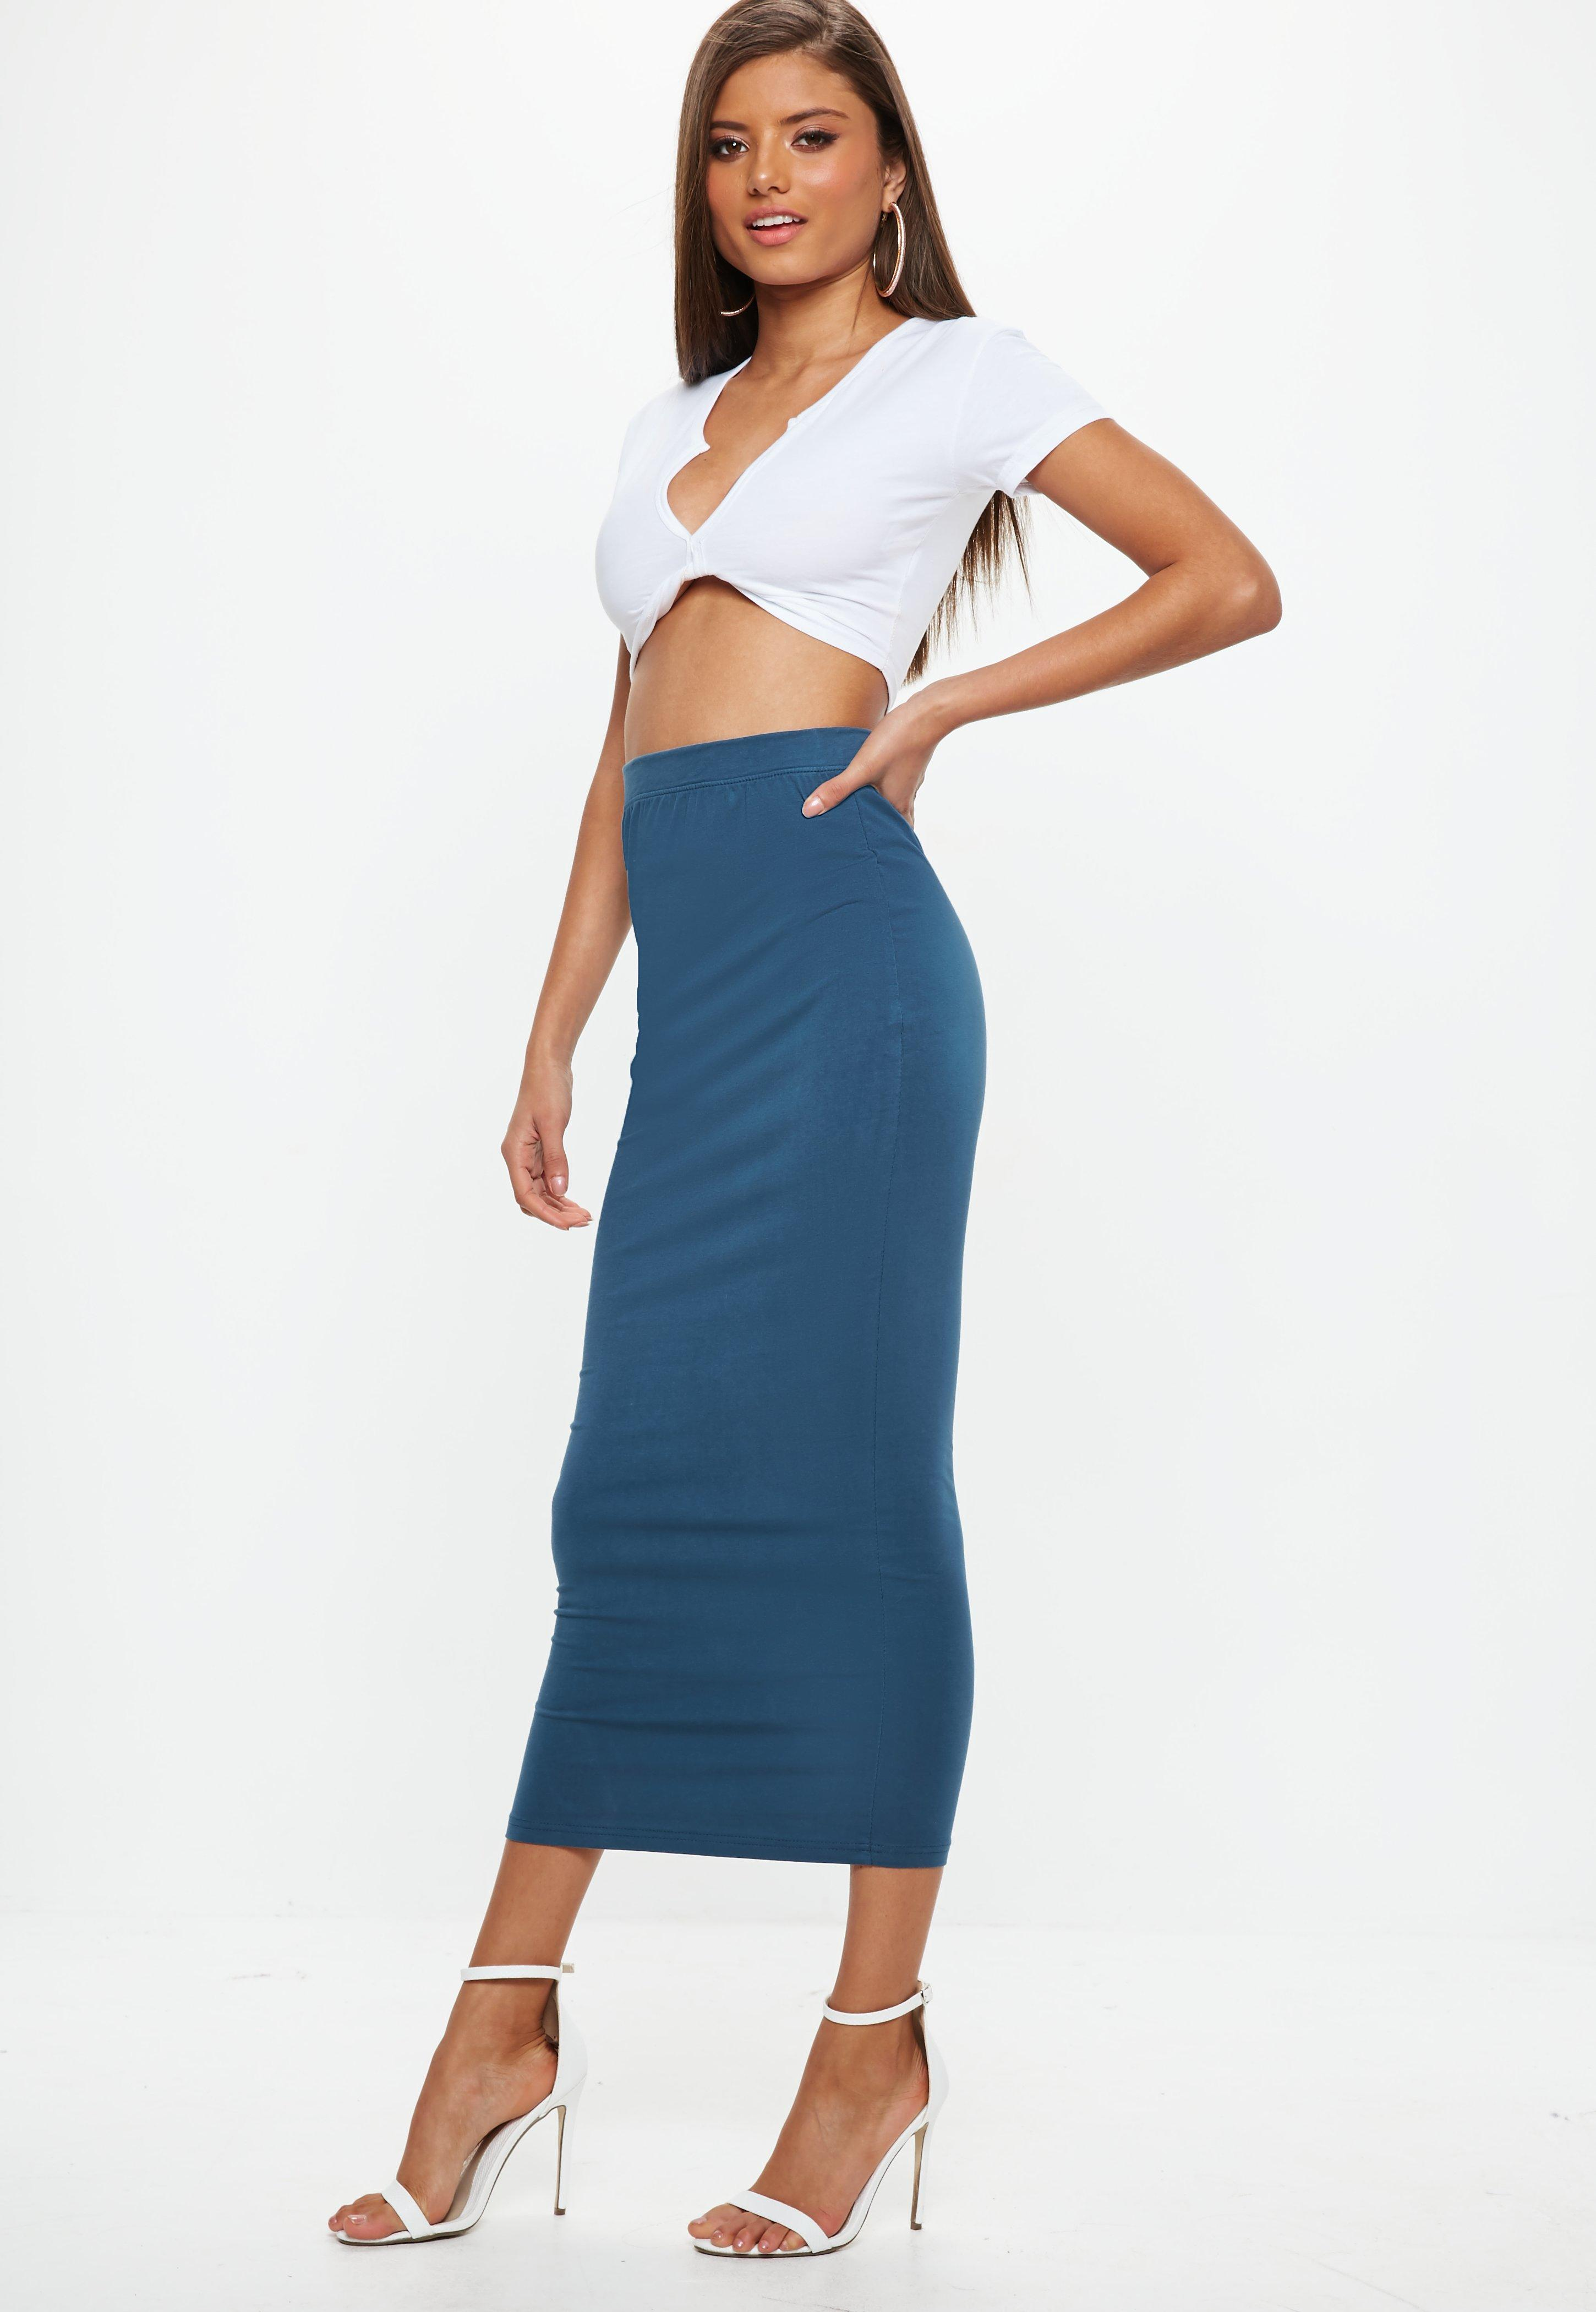 Midi Skirts - Knee & Calf Length Skirts Online | Missguided